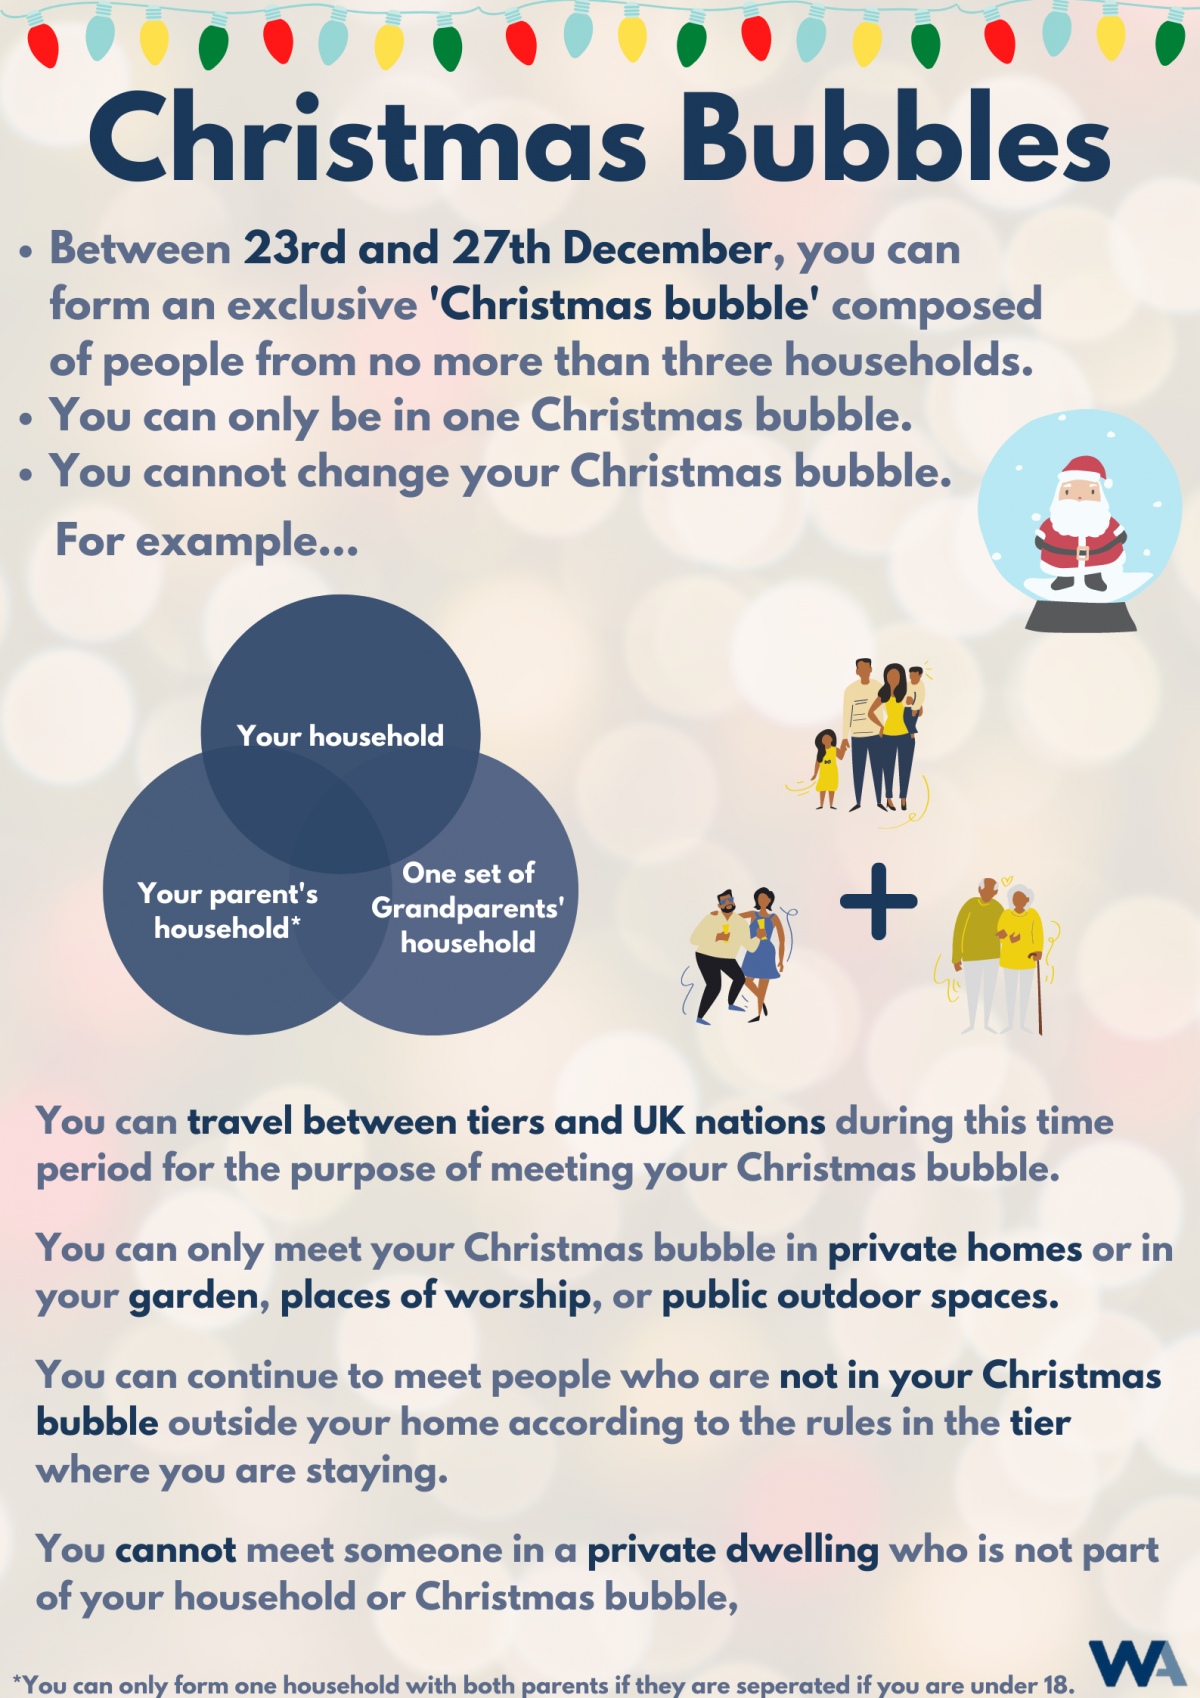 A poster describing the Christmas Bubble rules in the UK during the coronavirus pandemic.